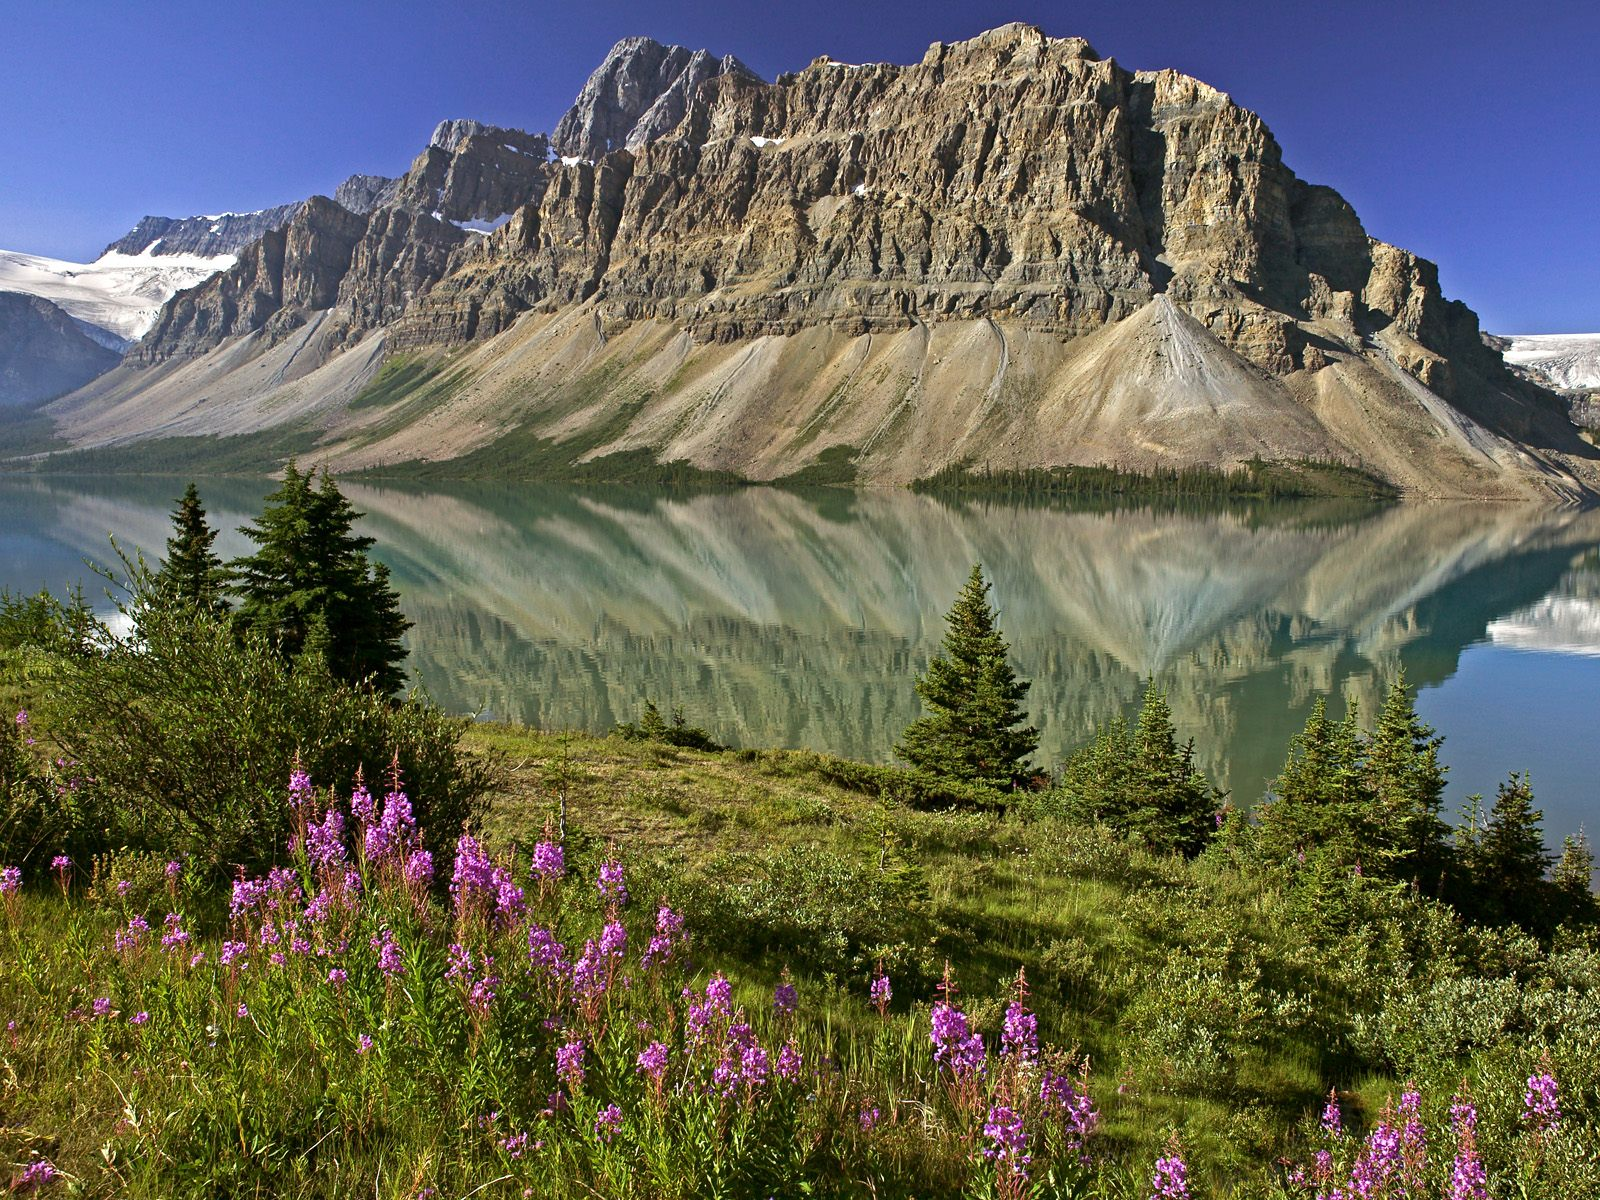 Travel Destinations for this August – Banff National Park, Canada